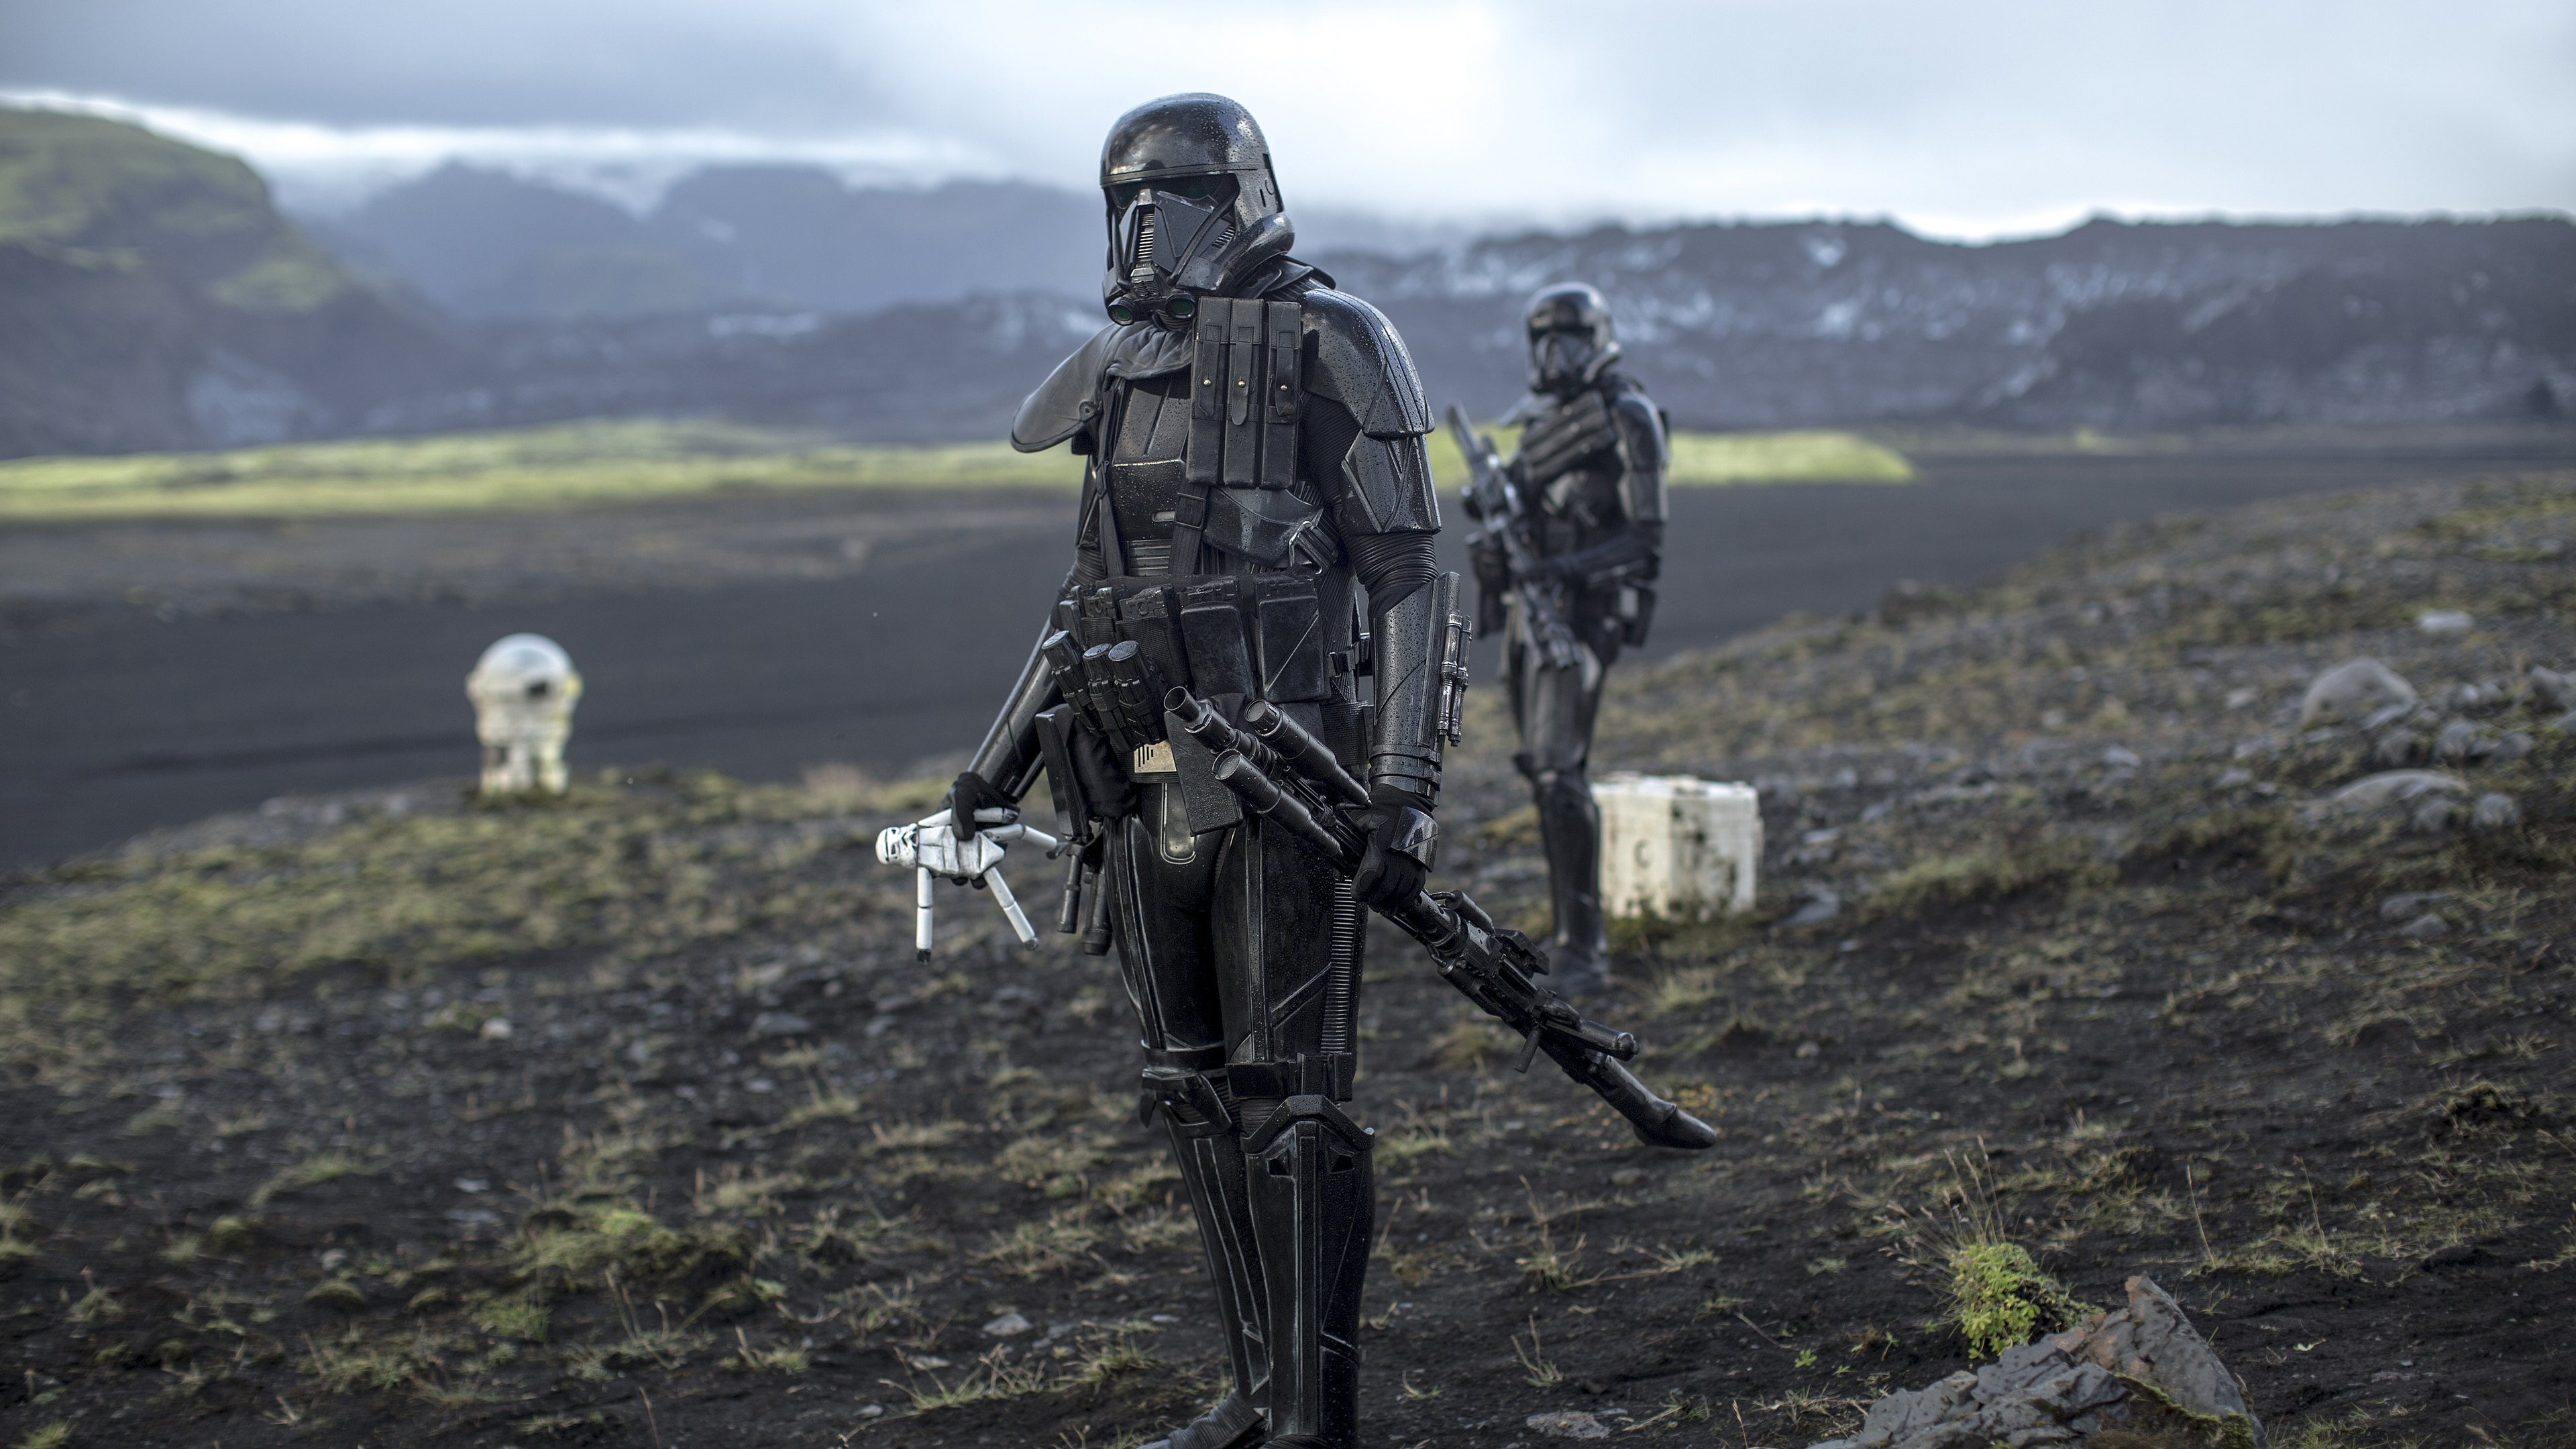 Wallpaper 4k Rogue One A Star Wars Story Trooper Deathtrooper Wallpapers Movies Wallpapers Rogue One A Star Wars Story Wallpapers Star Wars Wallpapers